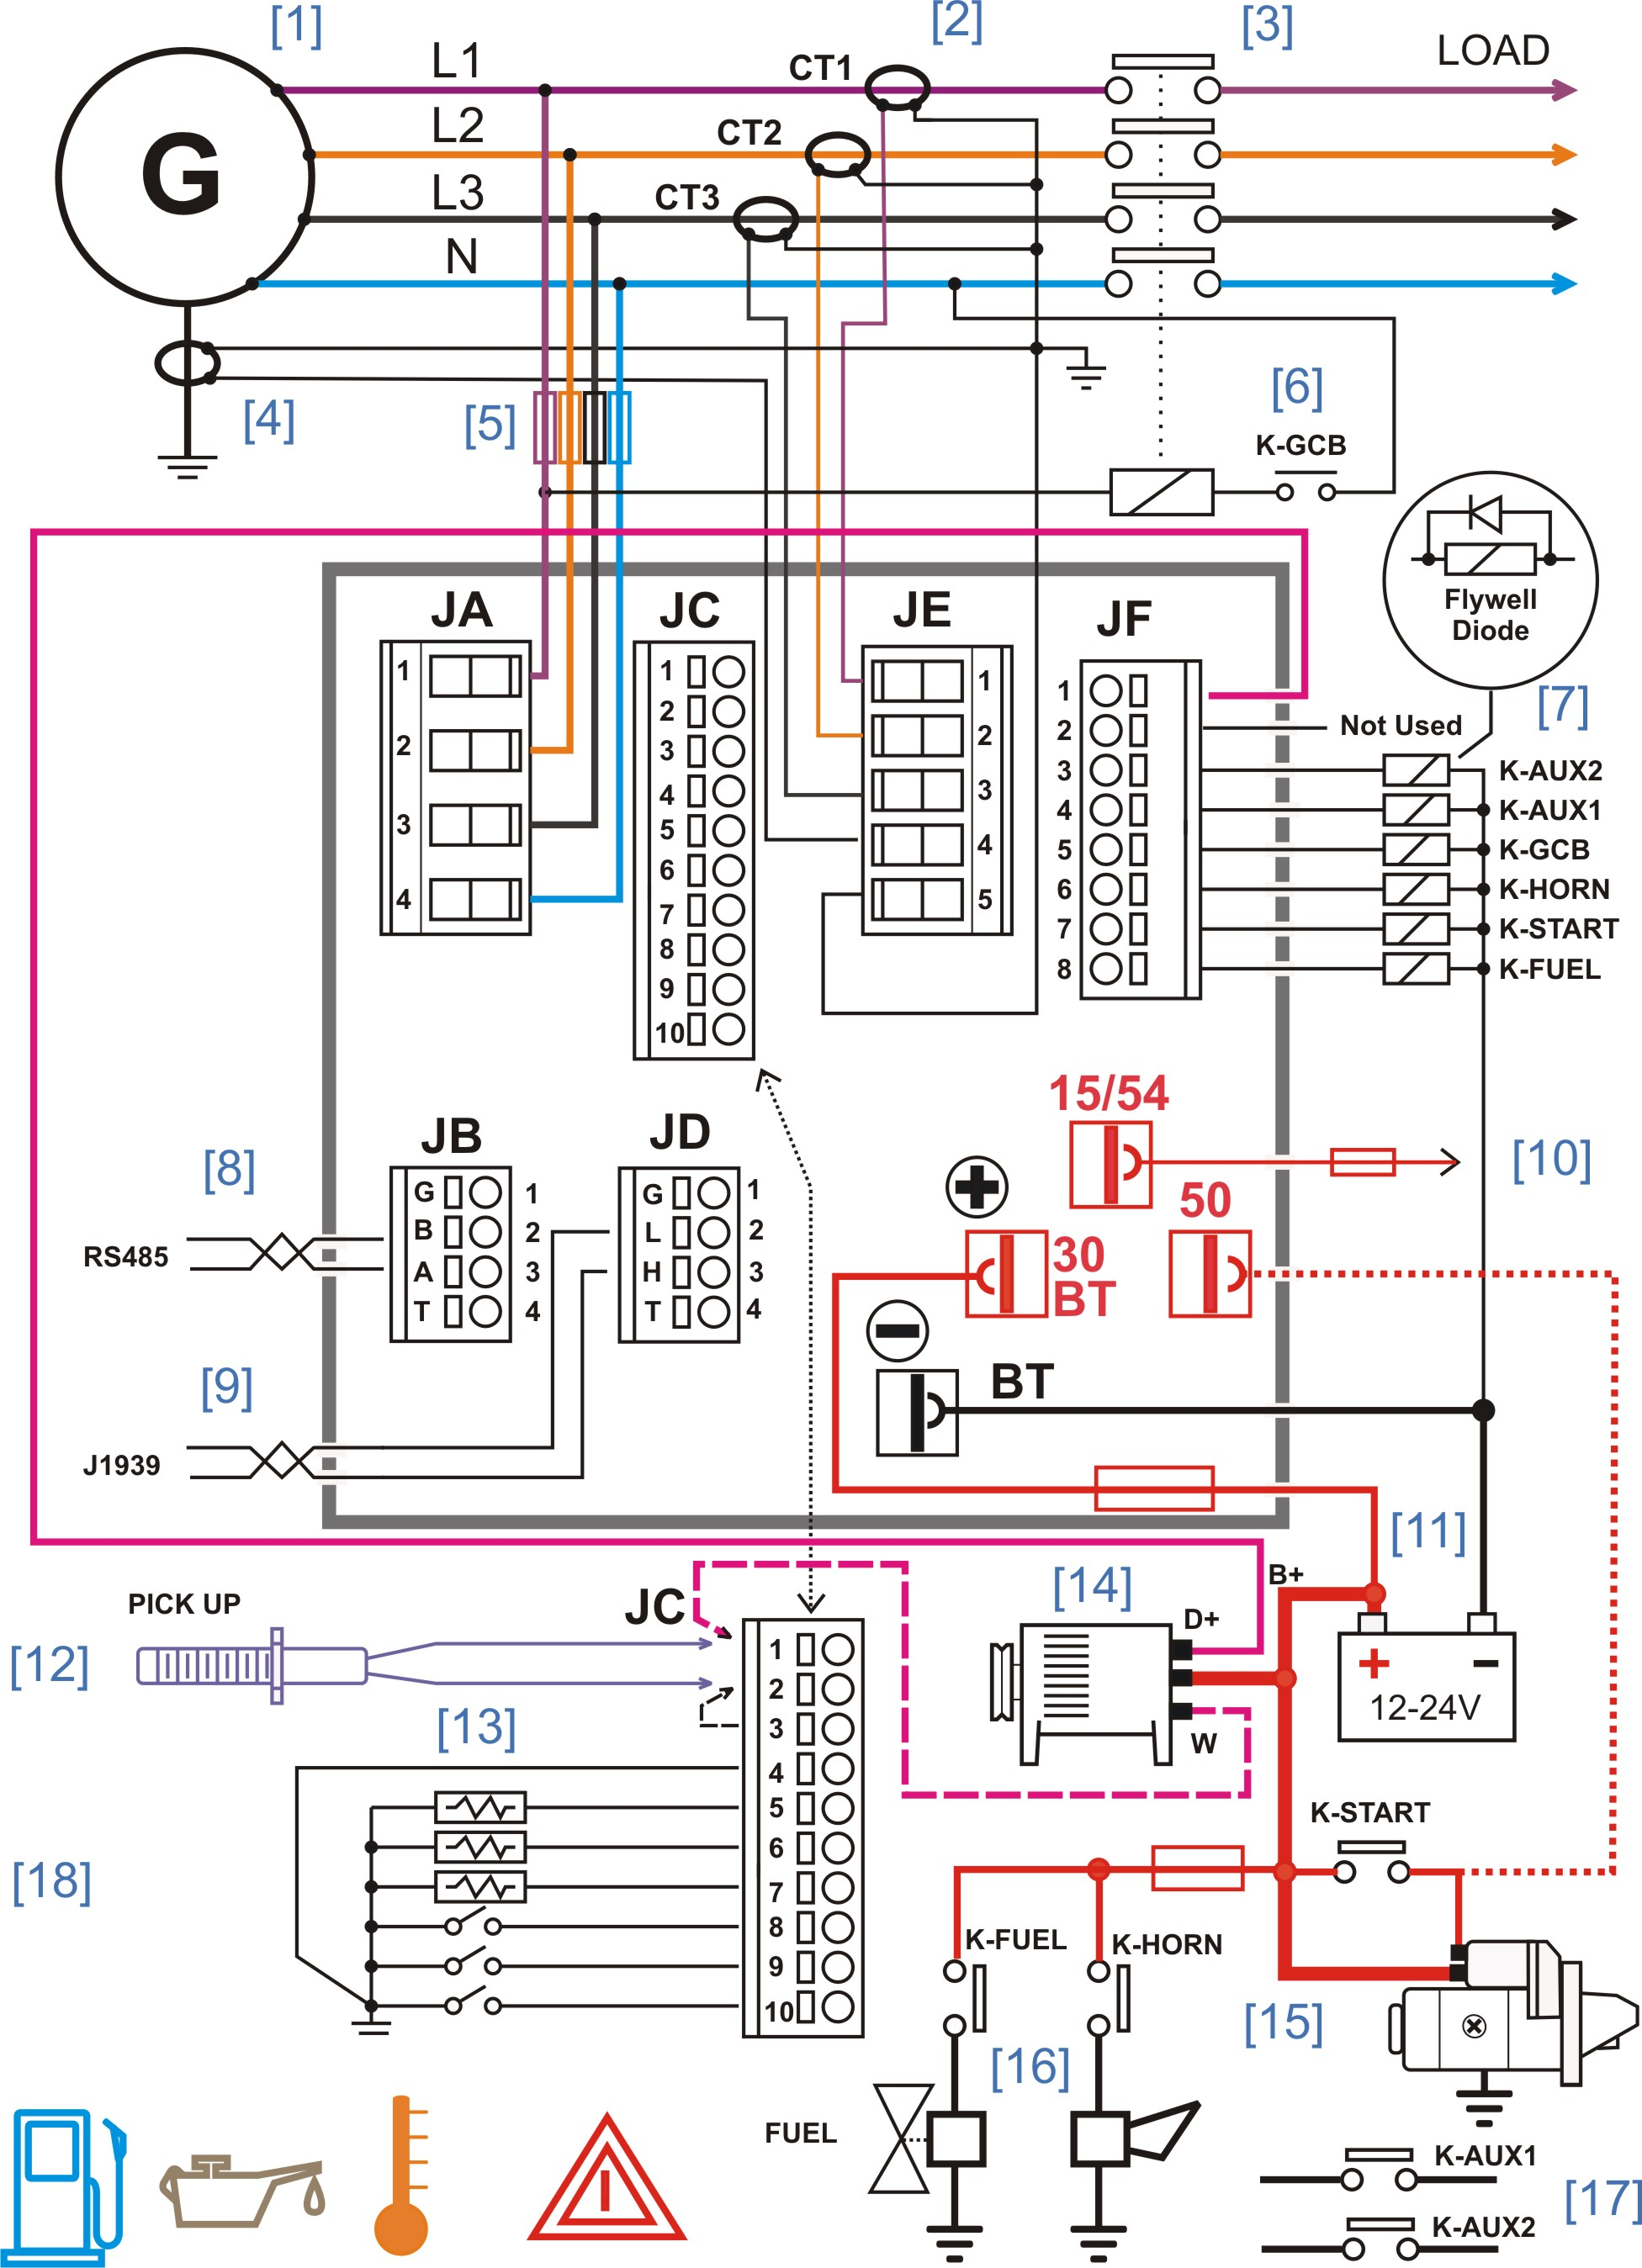 Generator Controller Wiring Diagram s bernini design com wp content uploads 2015 ac generator wiring schematic at panicattacktreatment.co